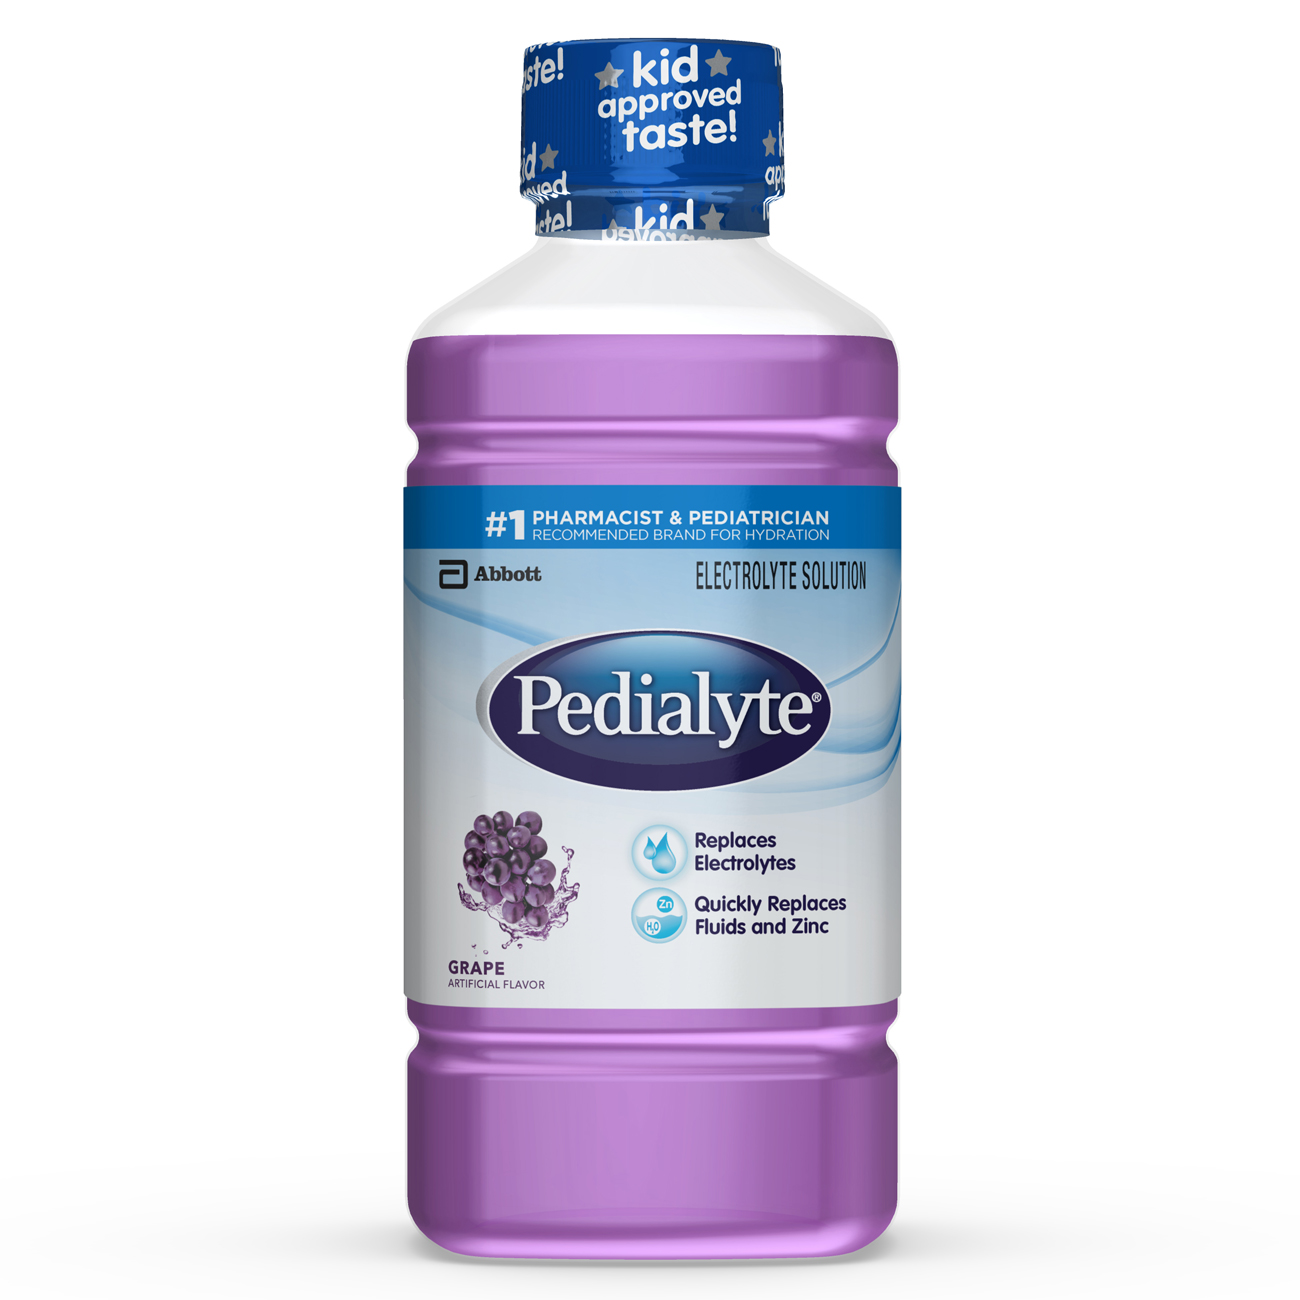 Pedialyte Electrolyte Solution, Electrolyte Drink, Grape, Liquid, 1-L